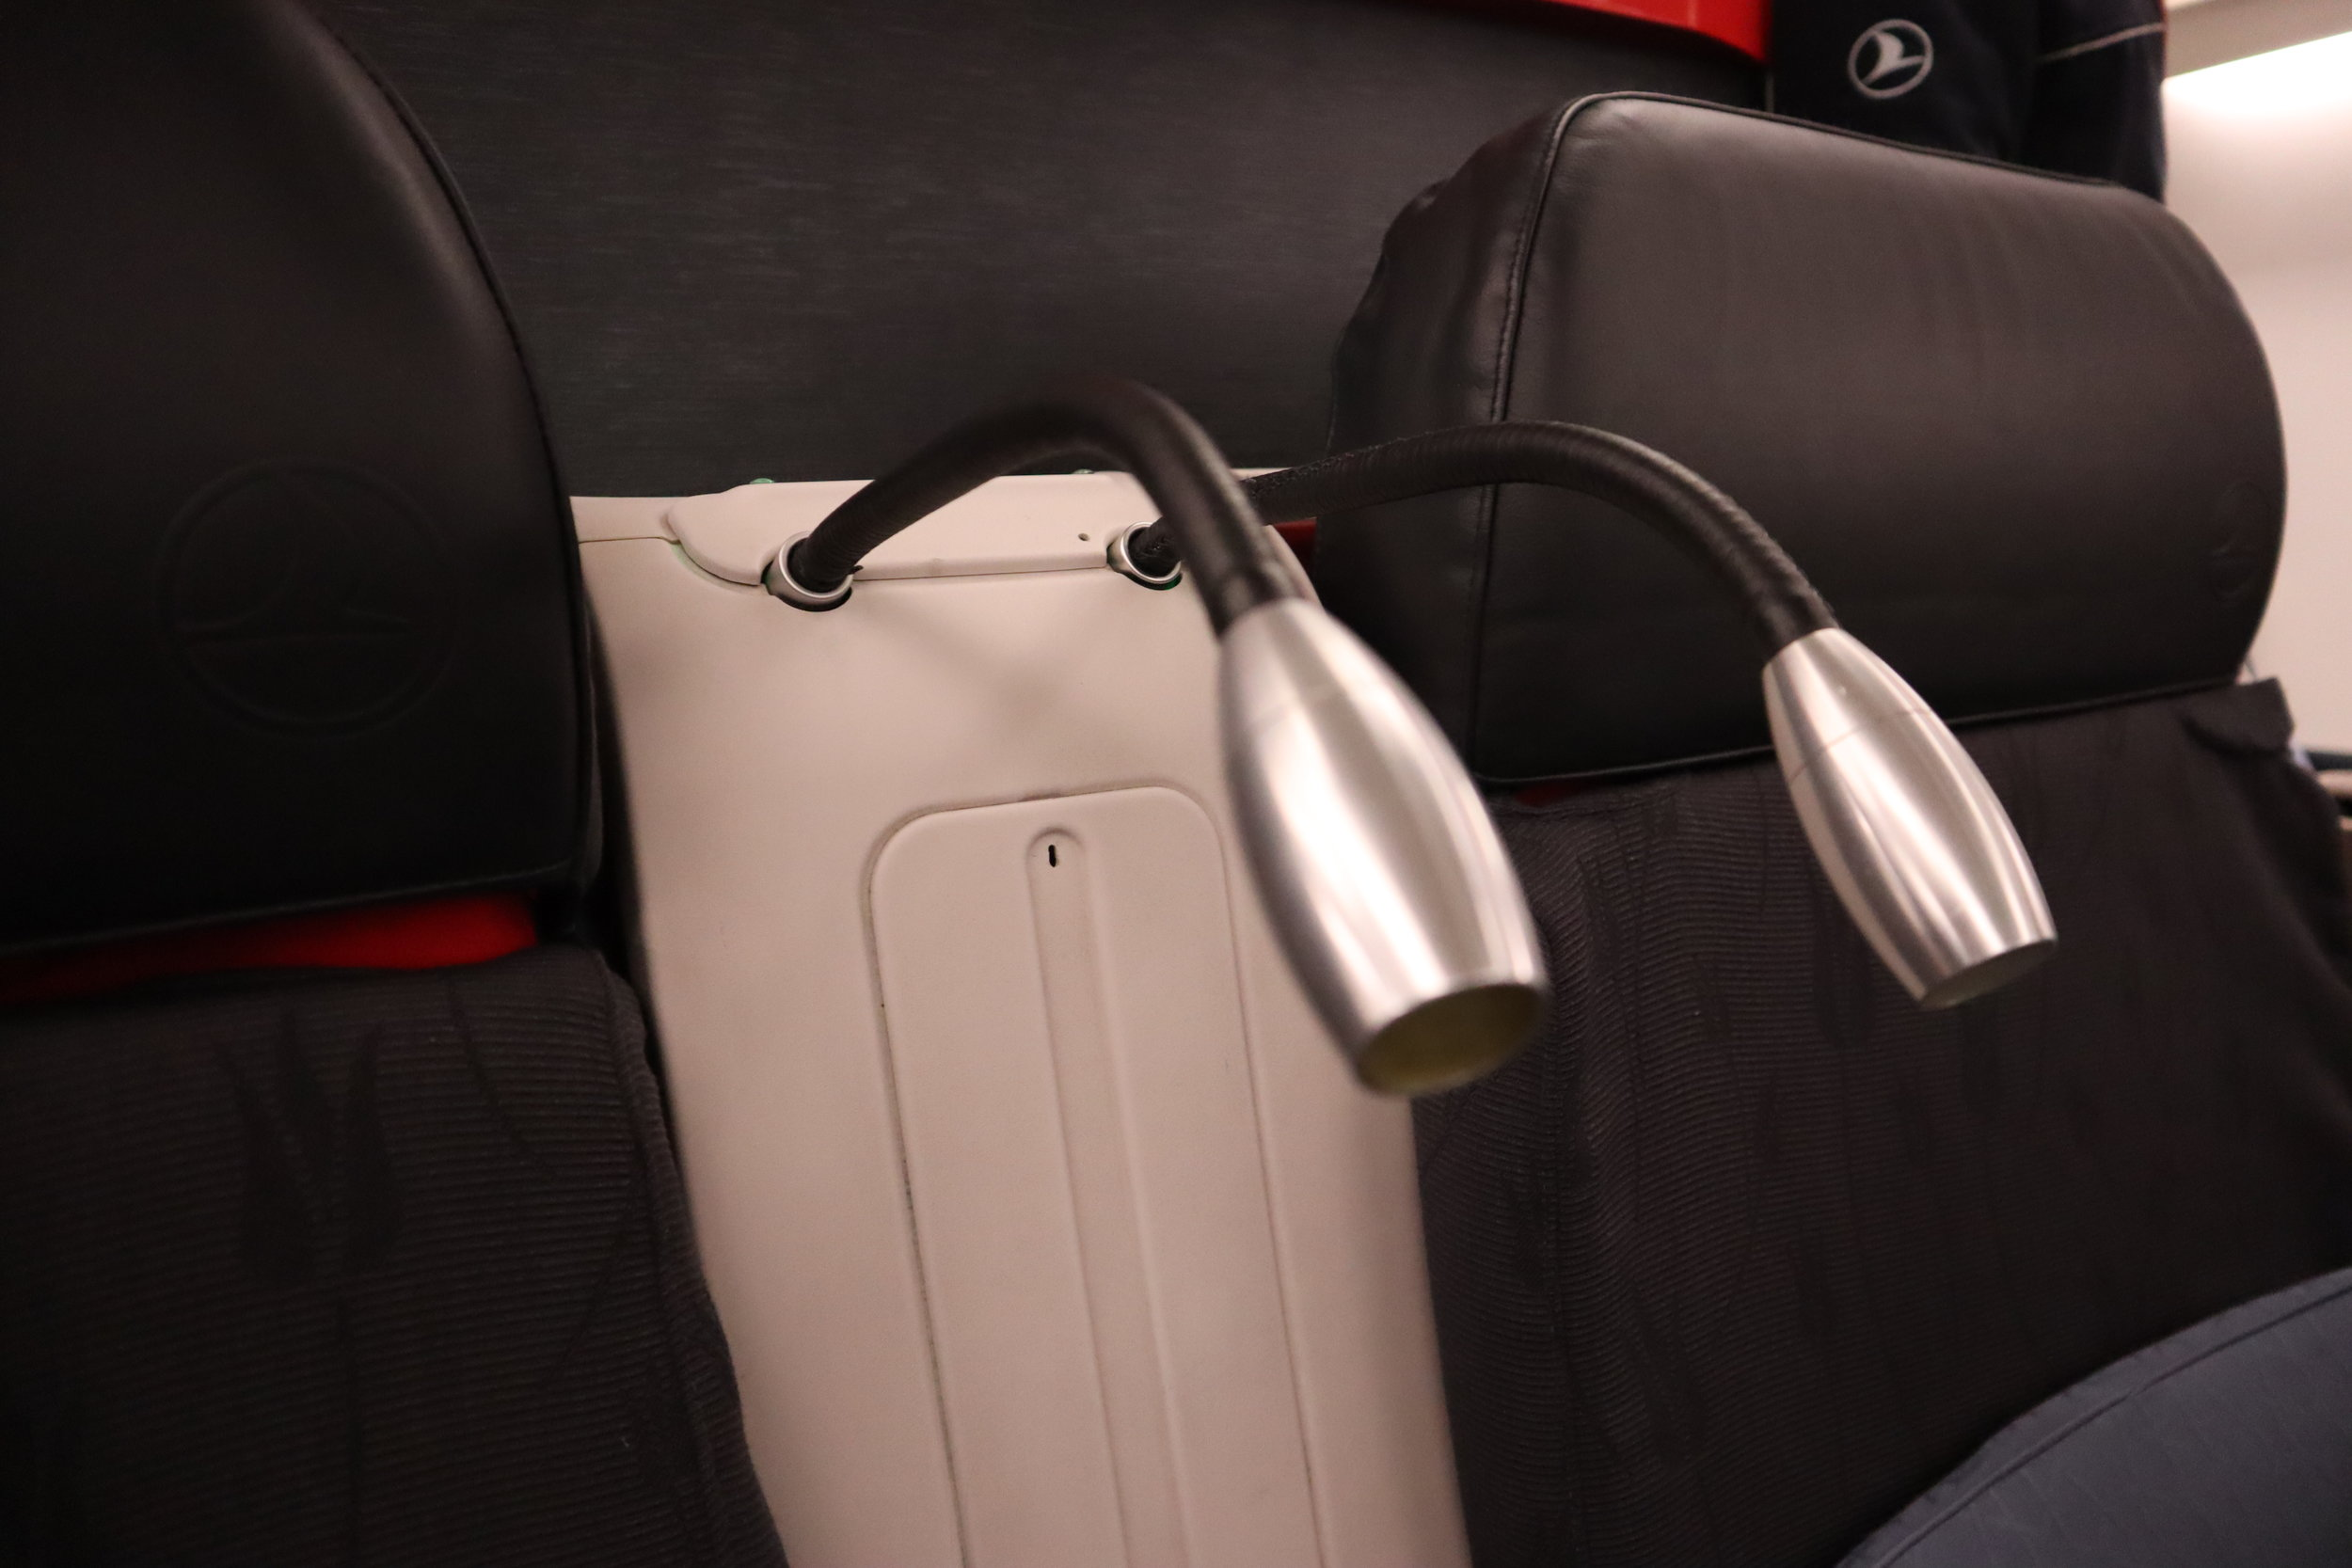 Turkish Airlines A330 business class – Reading lights